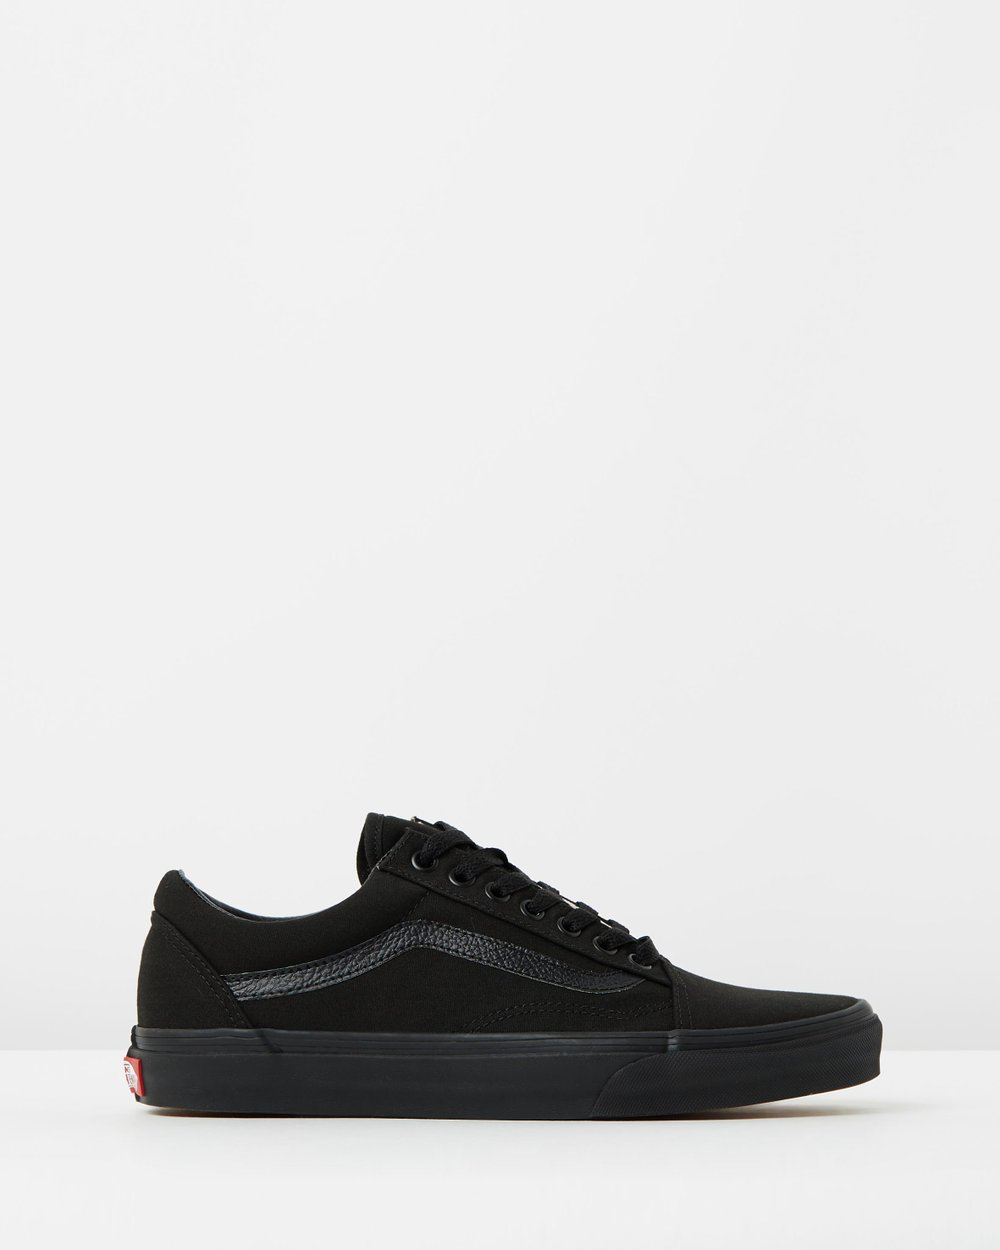 2282ad1a723c76 Old Skool by Vans Online